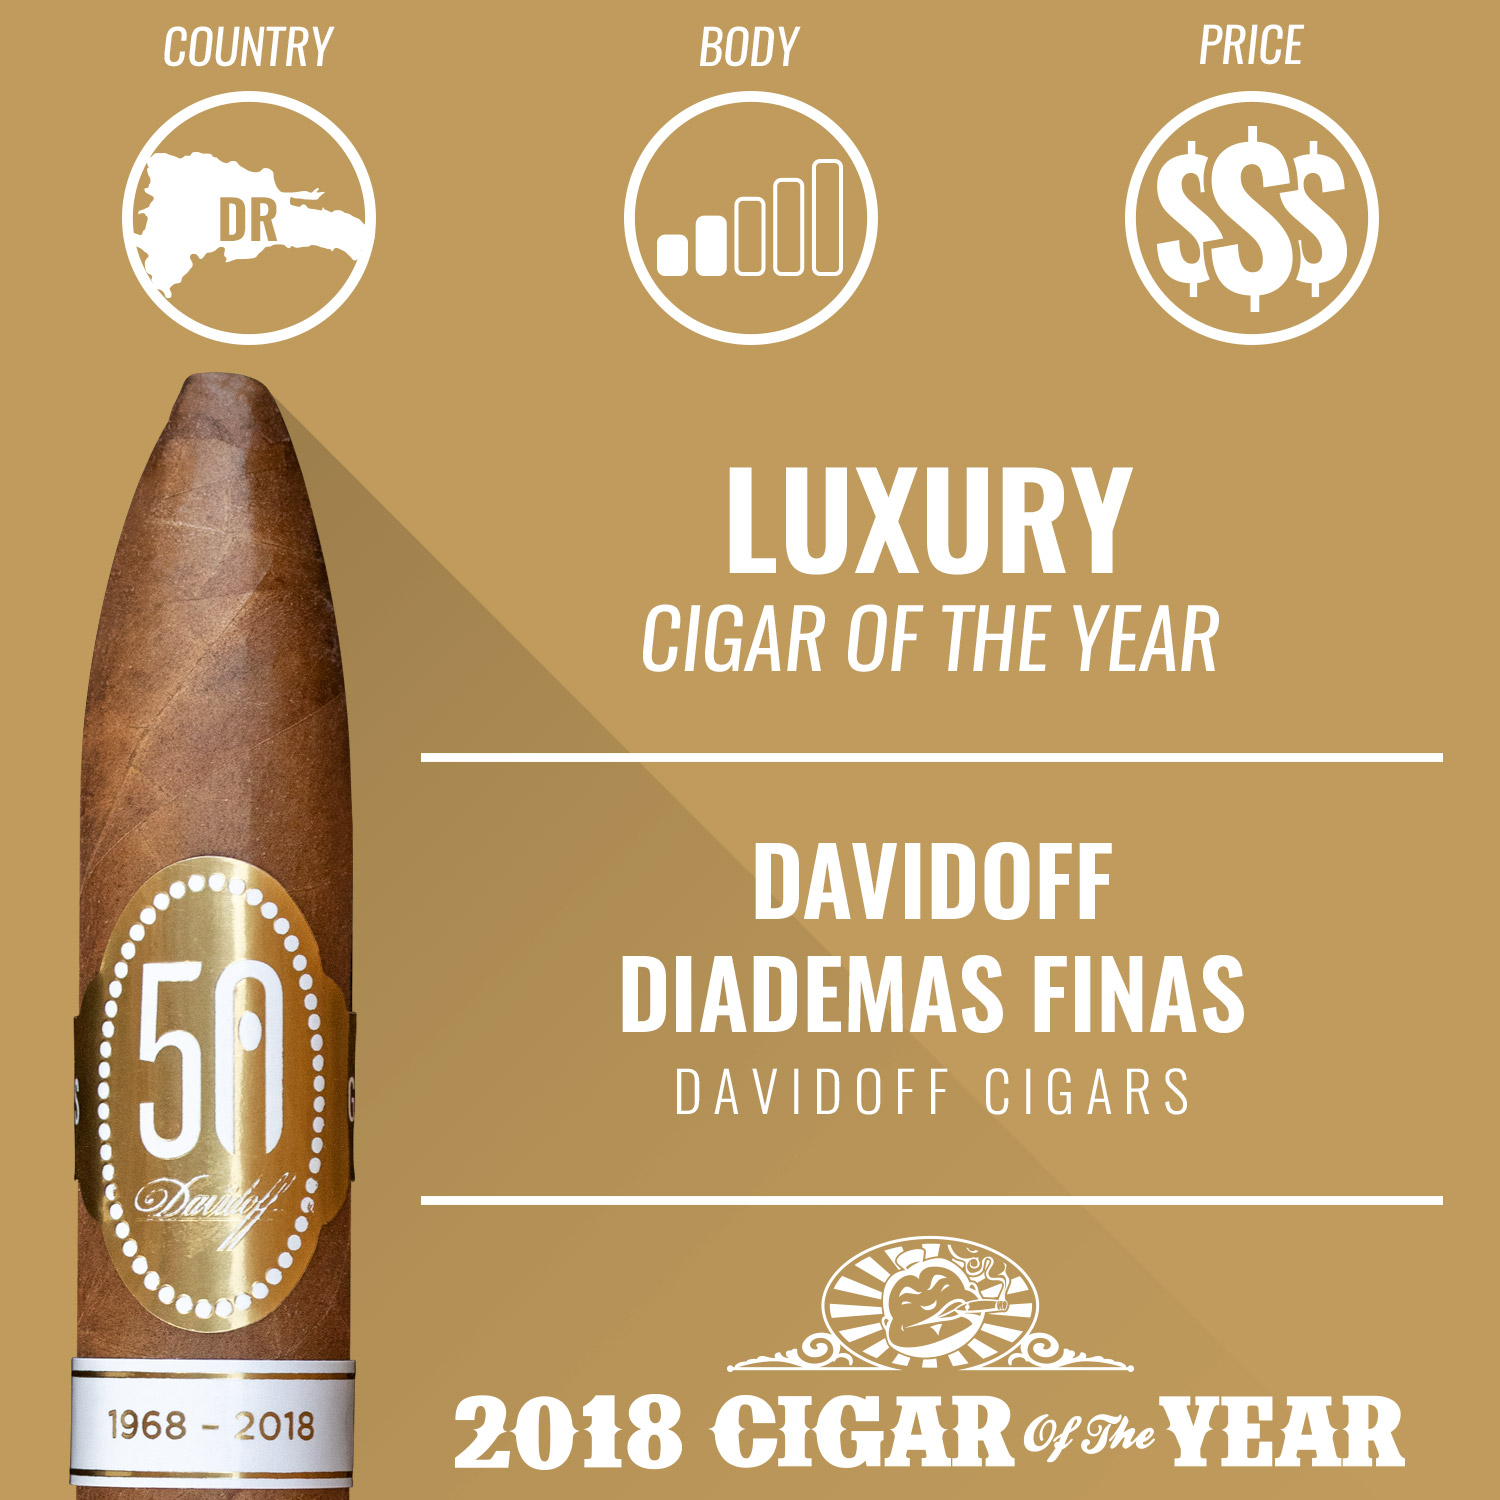 Davidoff Diademas Finas Luxury Cigar of the Year 2018